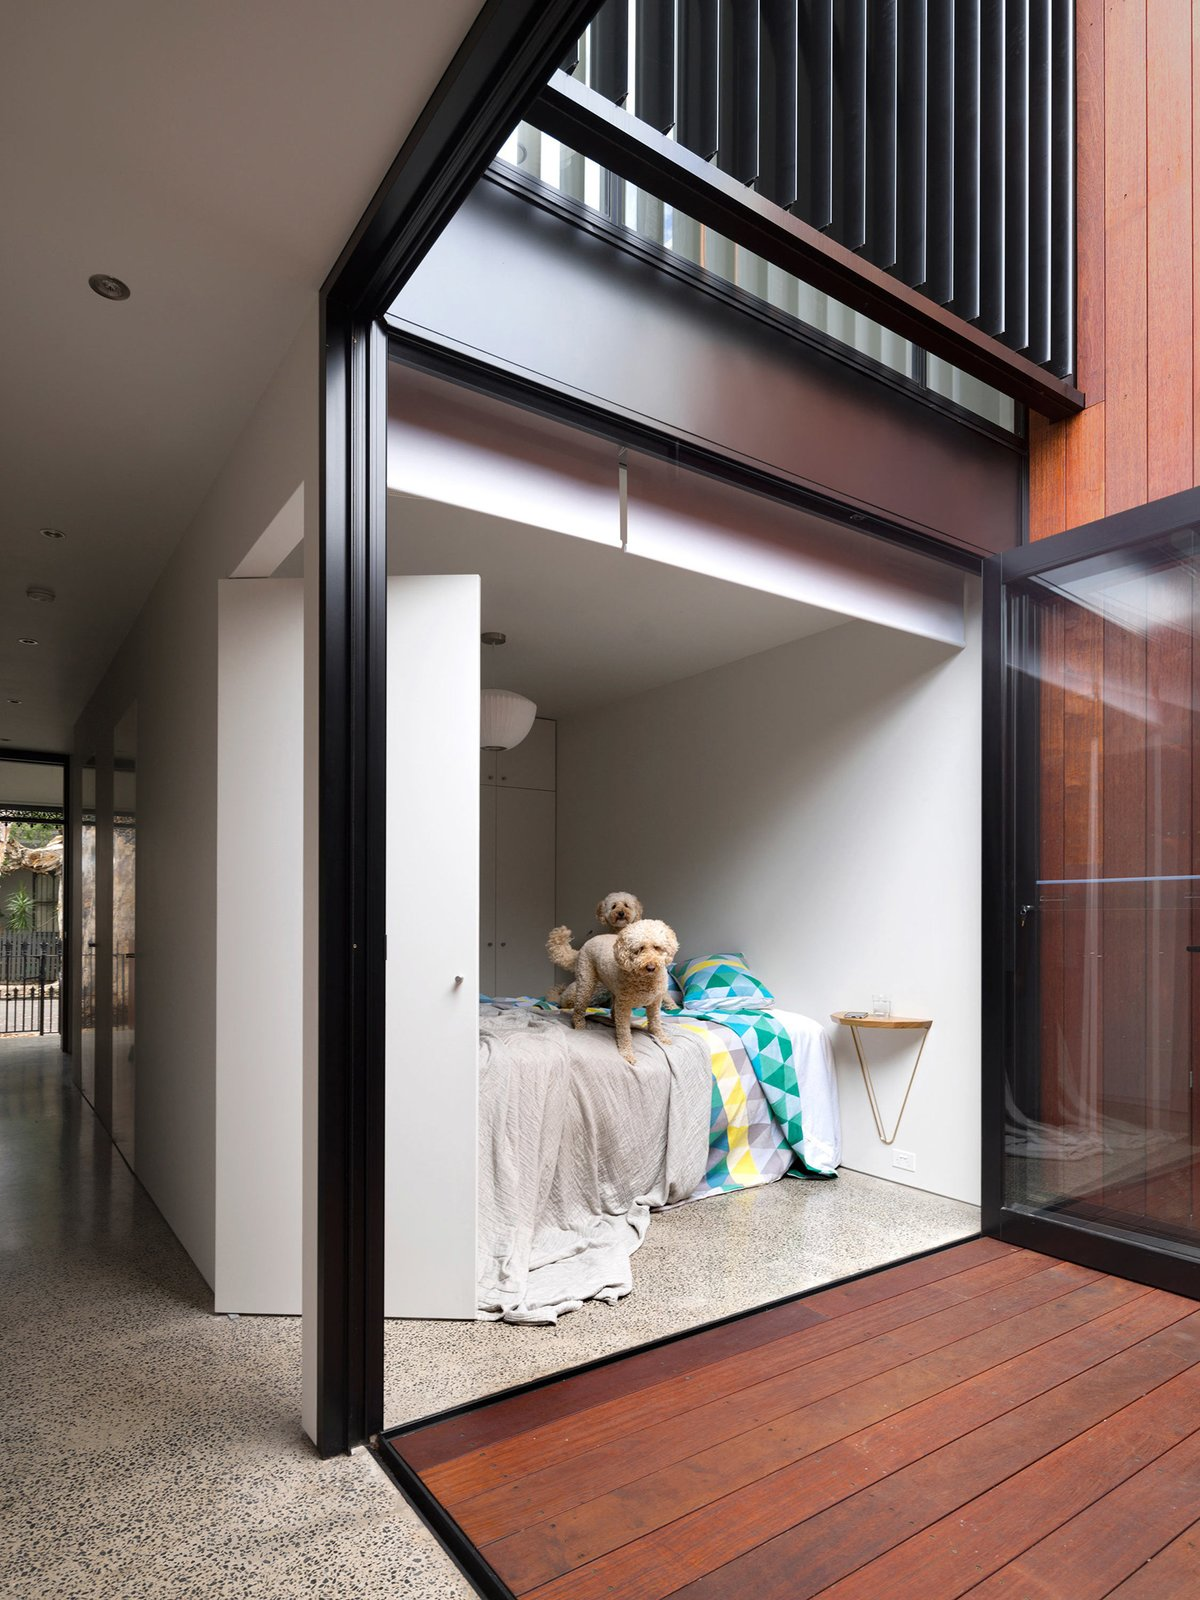 "An internal courtyard anchors the house while ushering in air and light. Its materials echo those used in the rear yard. ""You get a glimpse of both outdoor spaces when walking through the house,"" Abicic says."